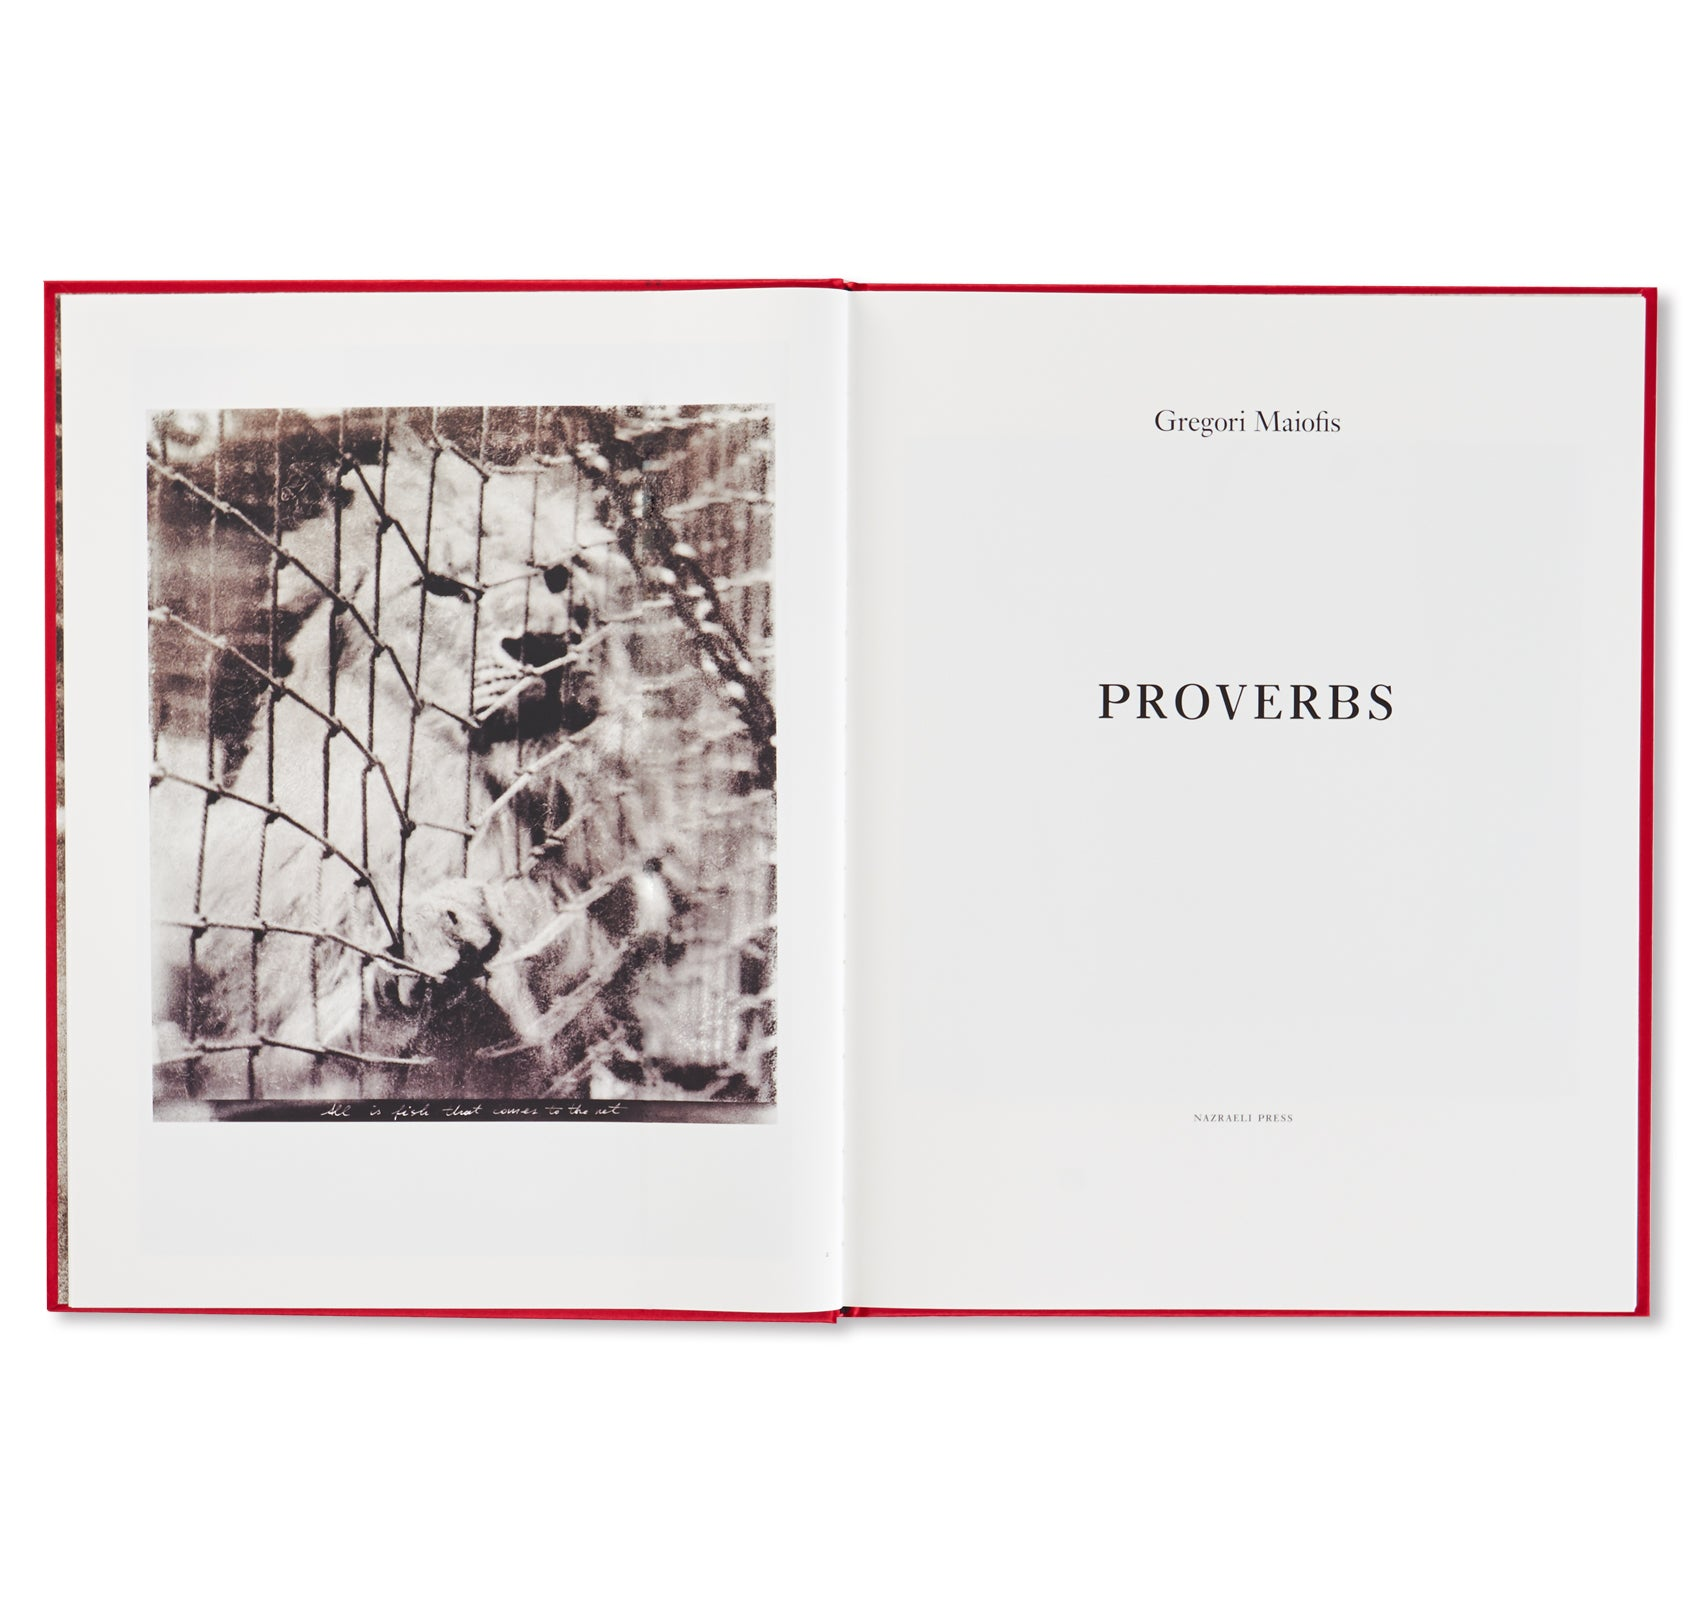 PROVERBS by Gregori Maiofis